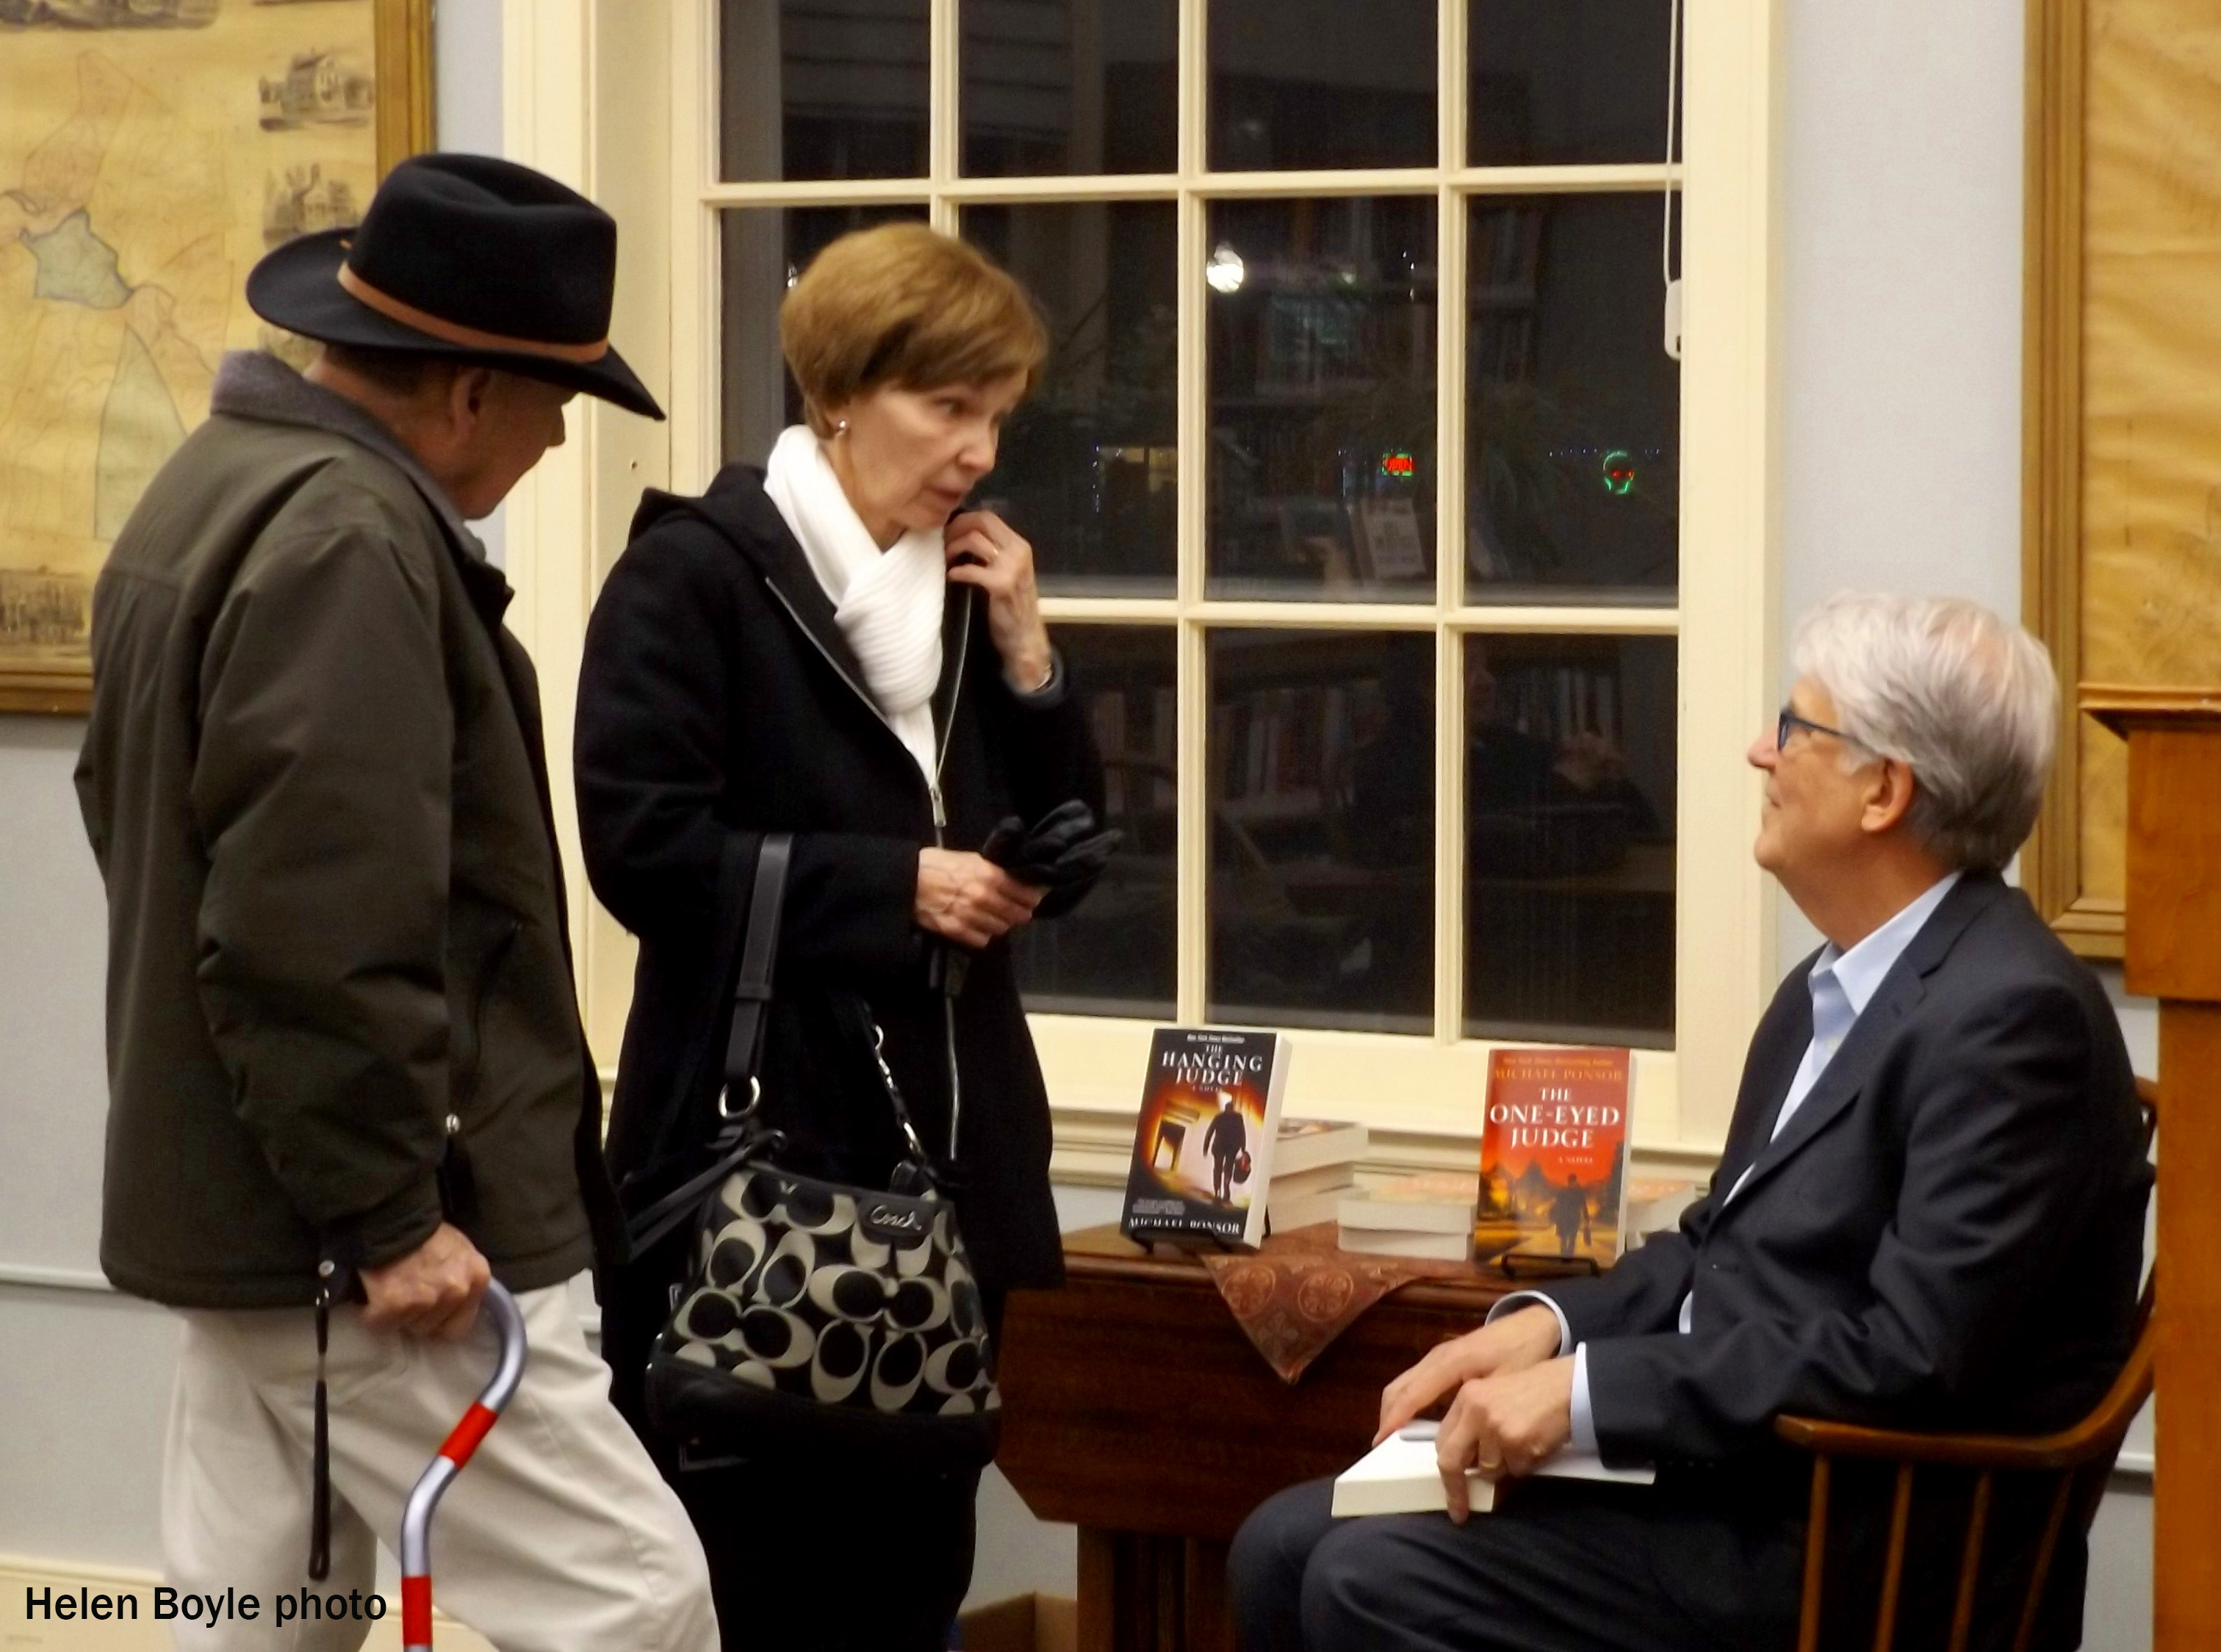 Bestselling author shares story with library patrons